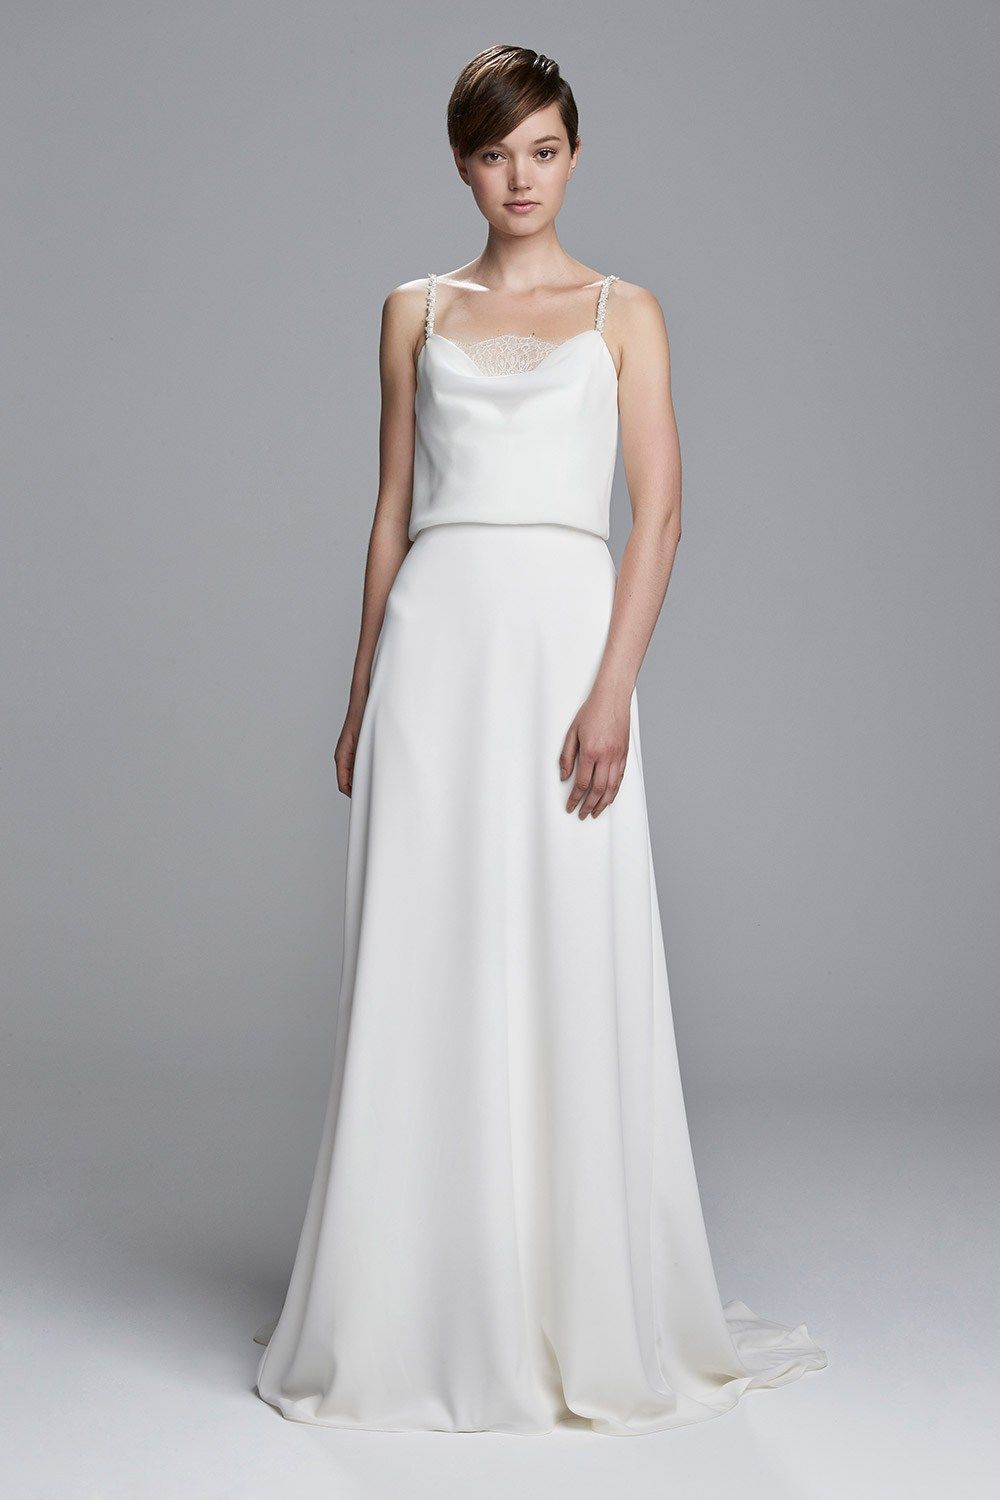 Christos Spring  Bridal Collection  Dresses  Pinterest